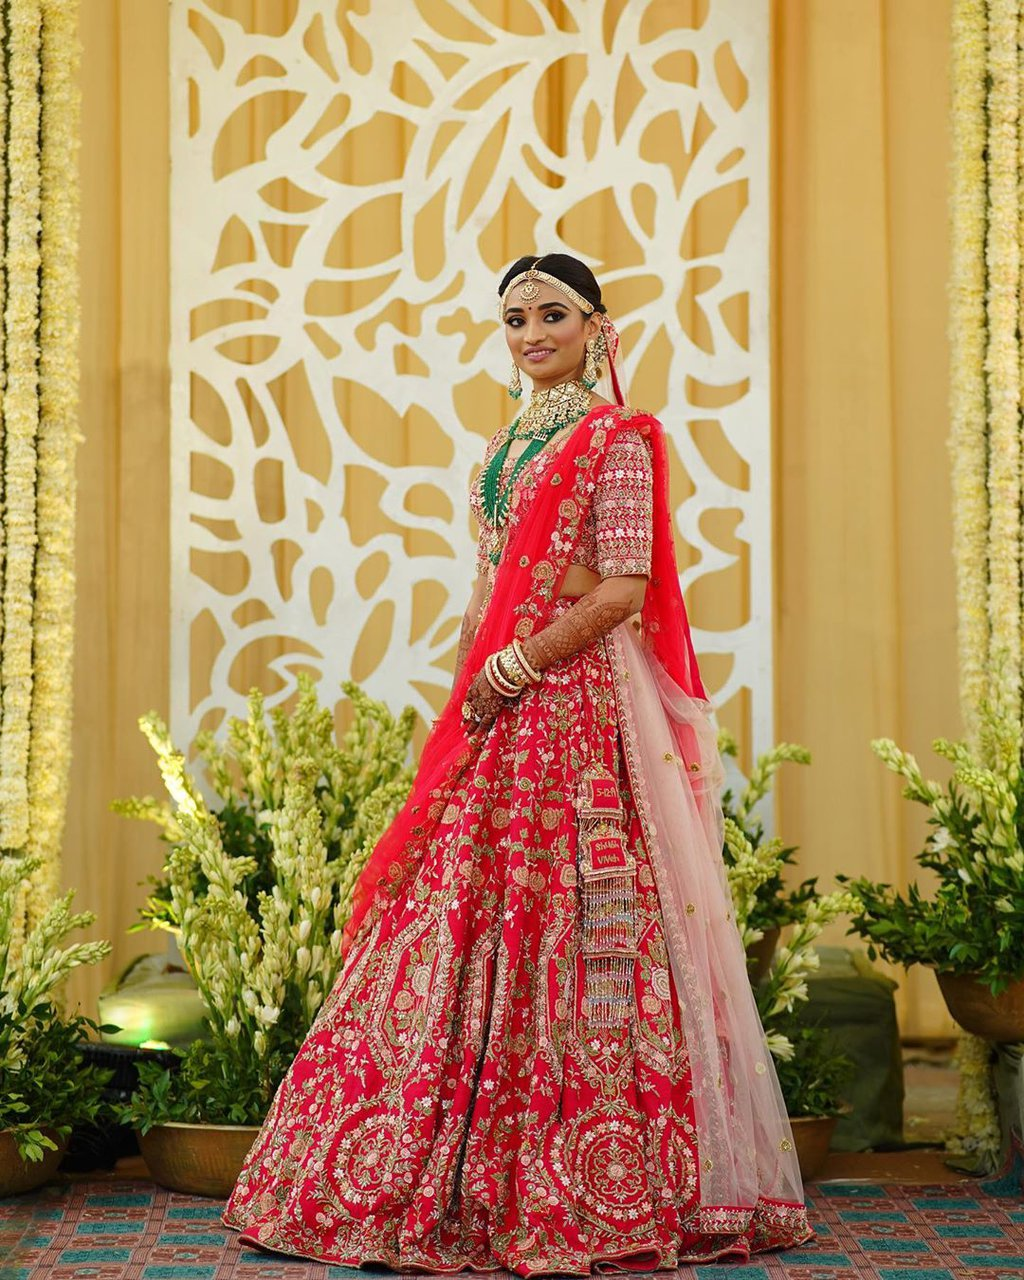 Best Website to Buy Bridal Lehenga - Kalki Fashions